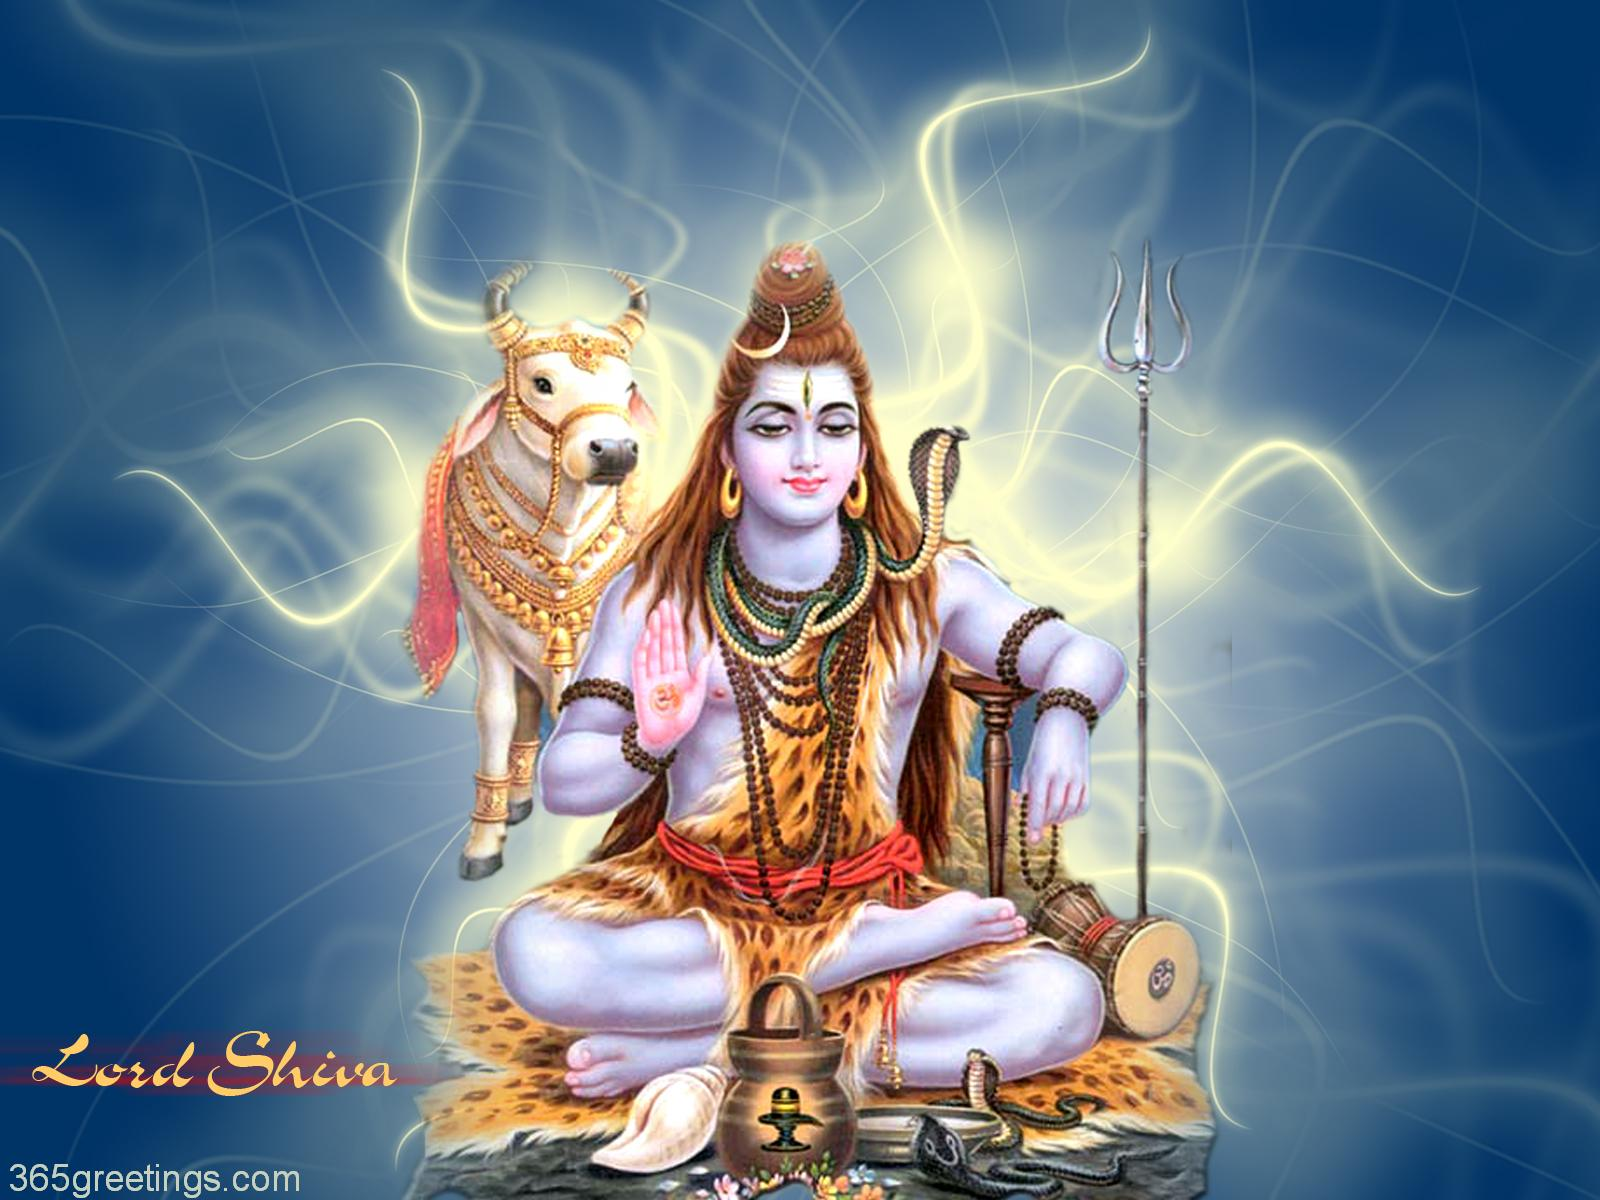 Lord Shiva Wallpapers Hd 4k 1 1 Apk Download: Shiva Images Wallpapers